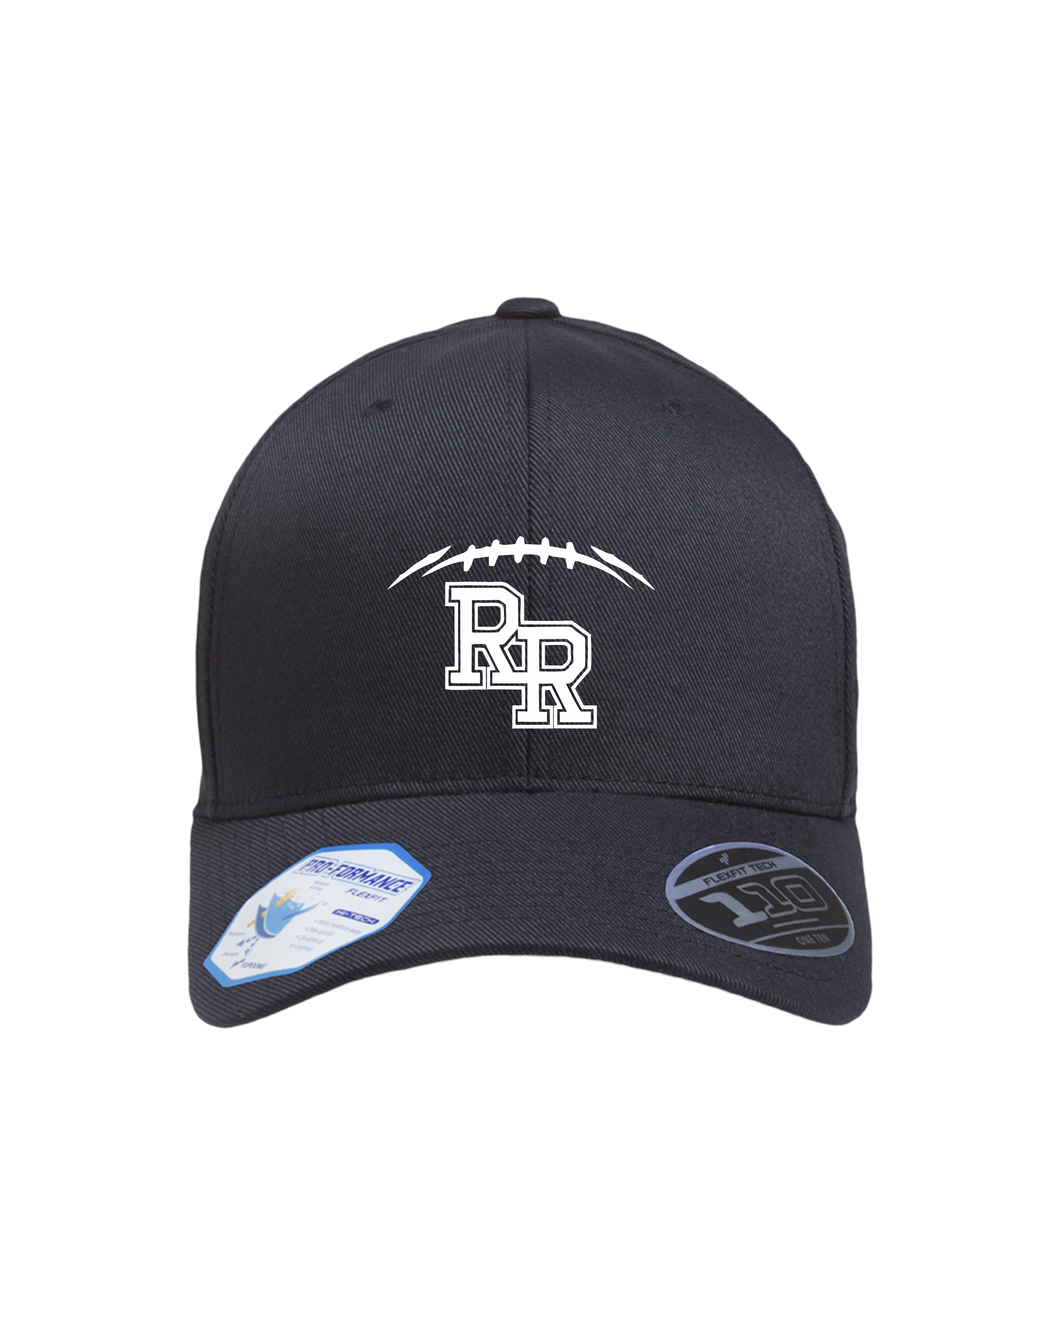 Item RR-FB-910-9 - Flexfit Adult Pro-Formance® Solid Cap - RR FB Laces Logo